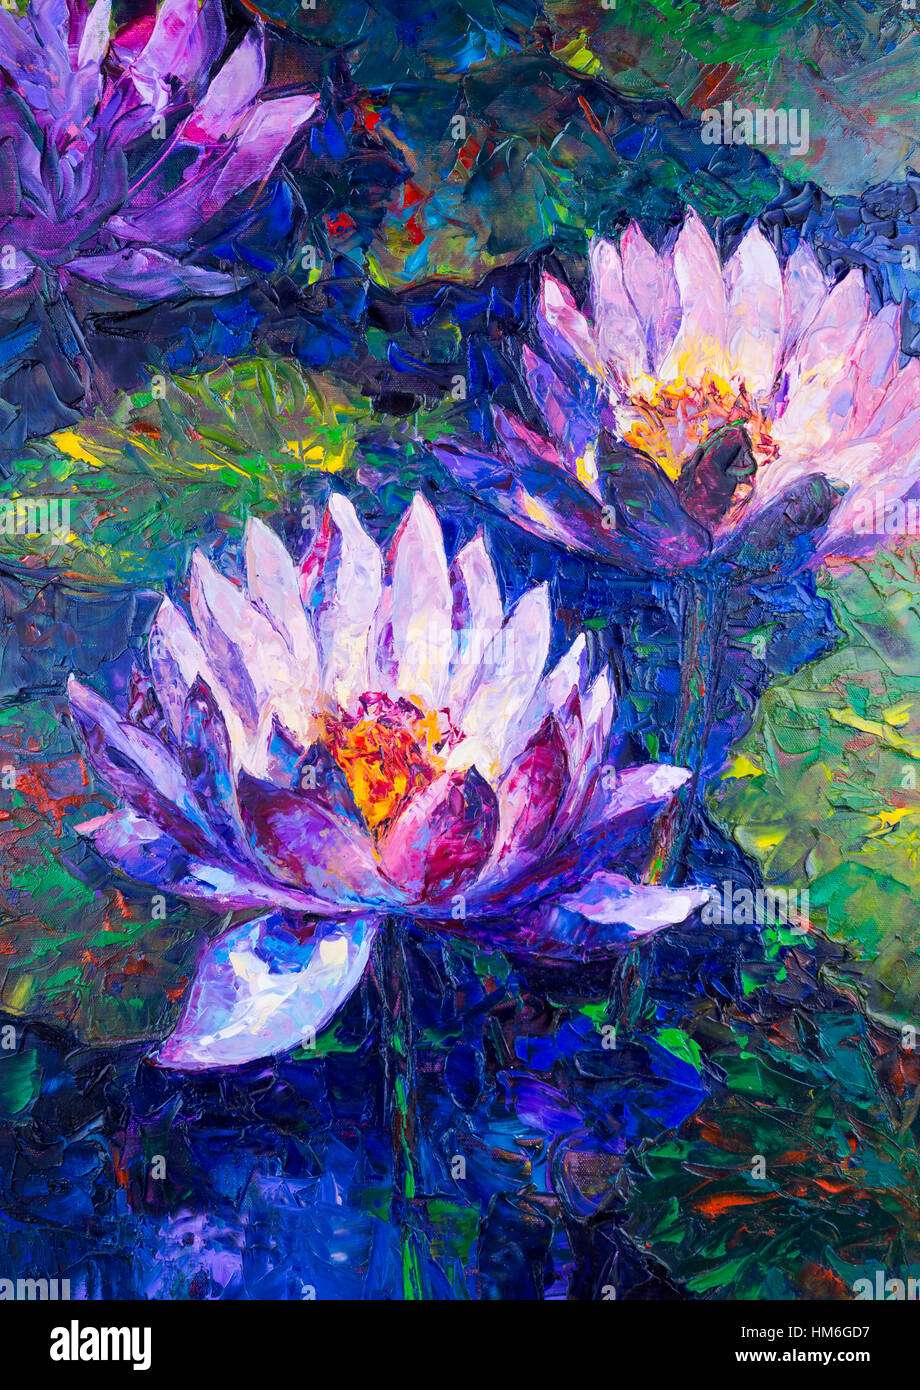 Lotus flowers paintings choice image flower decoration ideas oil painting of beautiful lotus flower stock photo 132910323 alamy oil painting of beautiful lotus flower izmirmasajfo